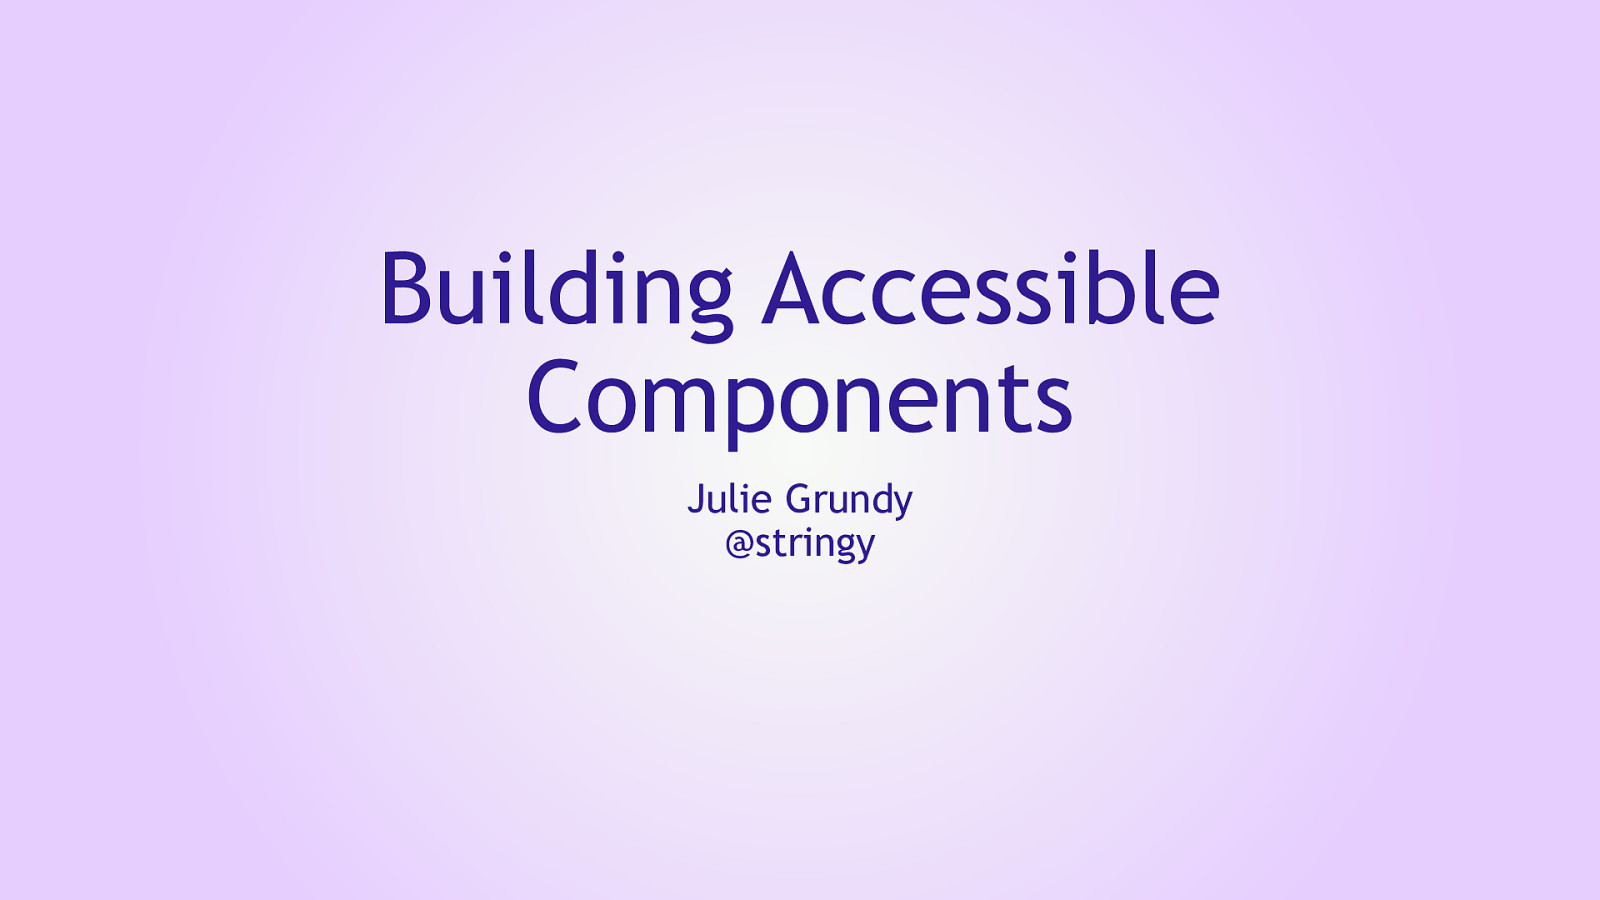 Building Accessible Components